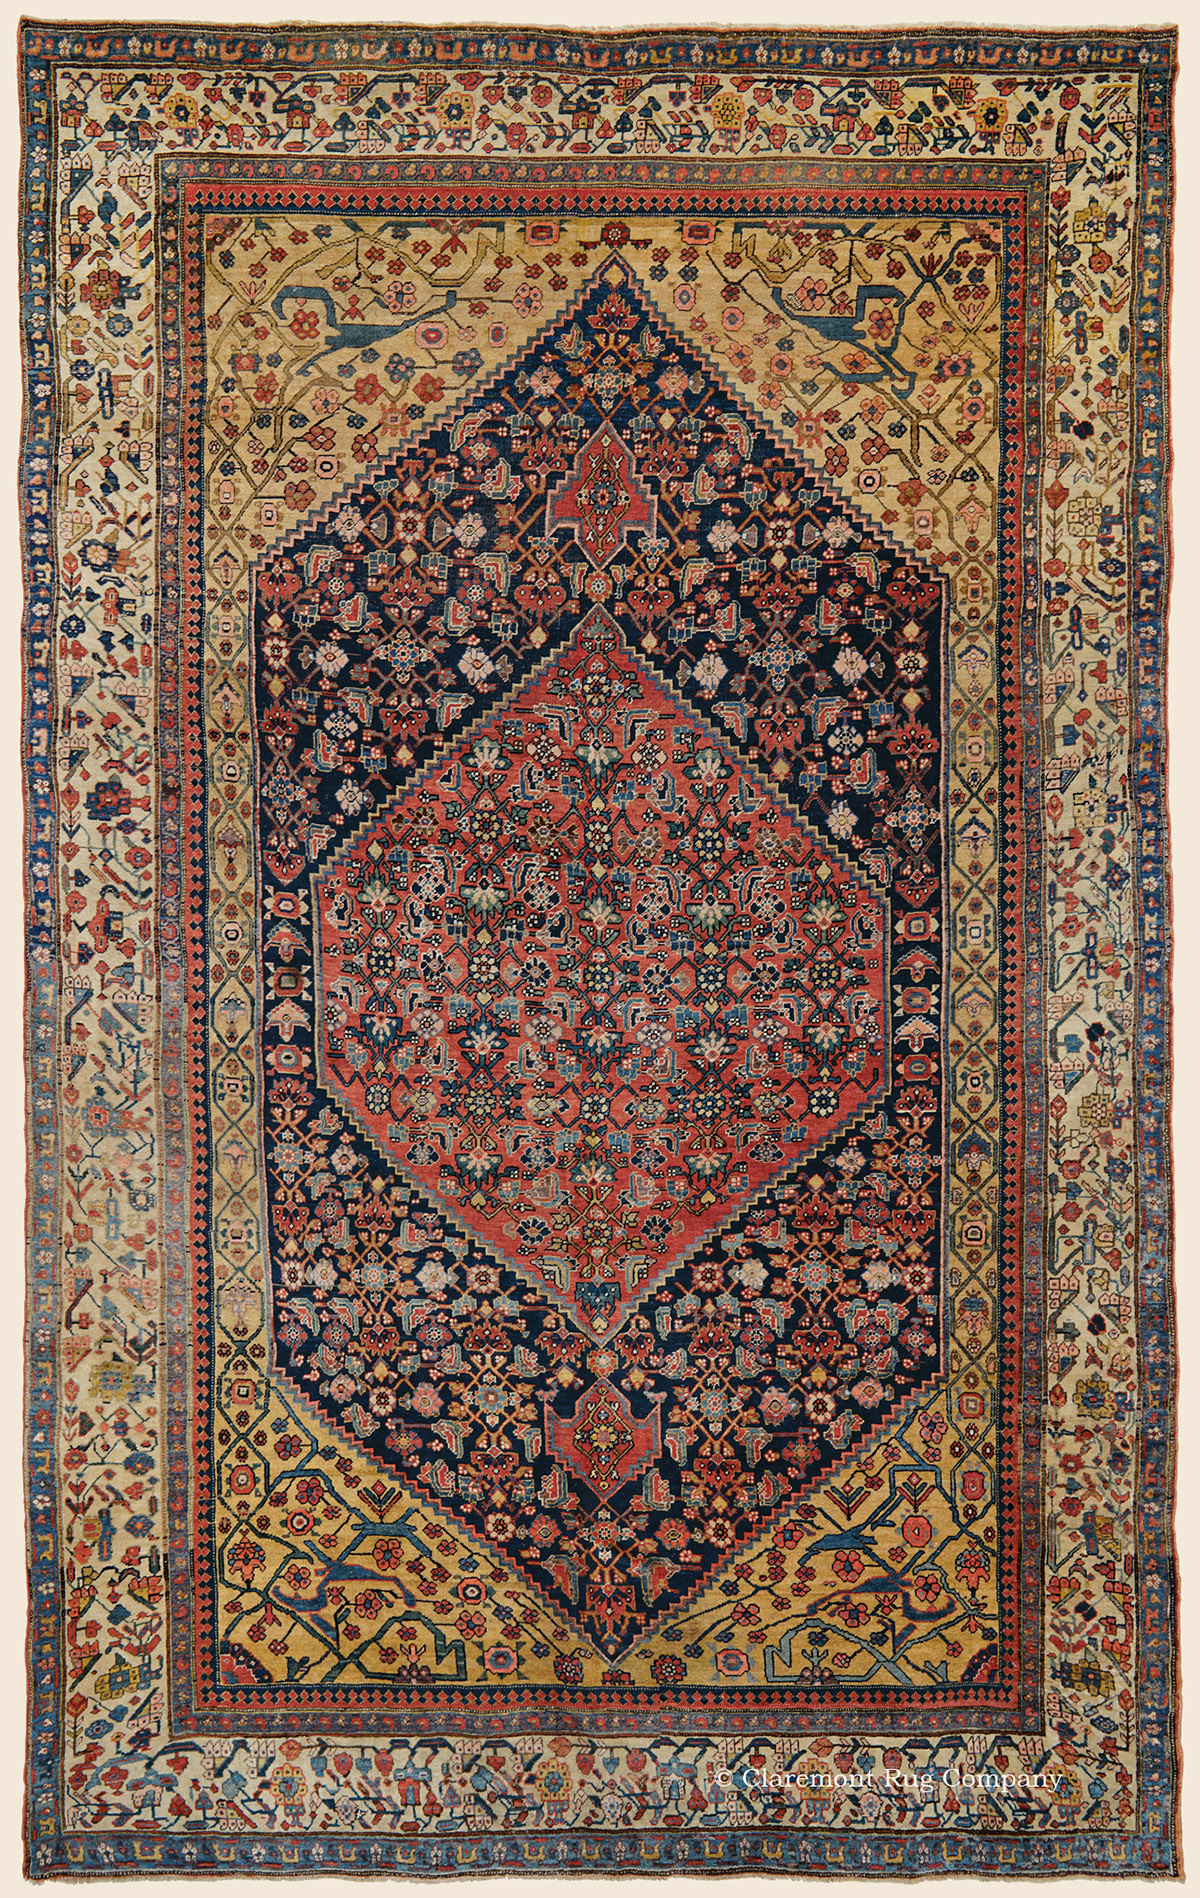 Halvai Bijar Bidjar Northwest Persian Antique Rug